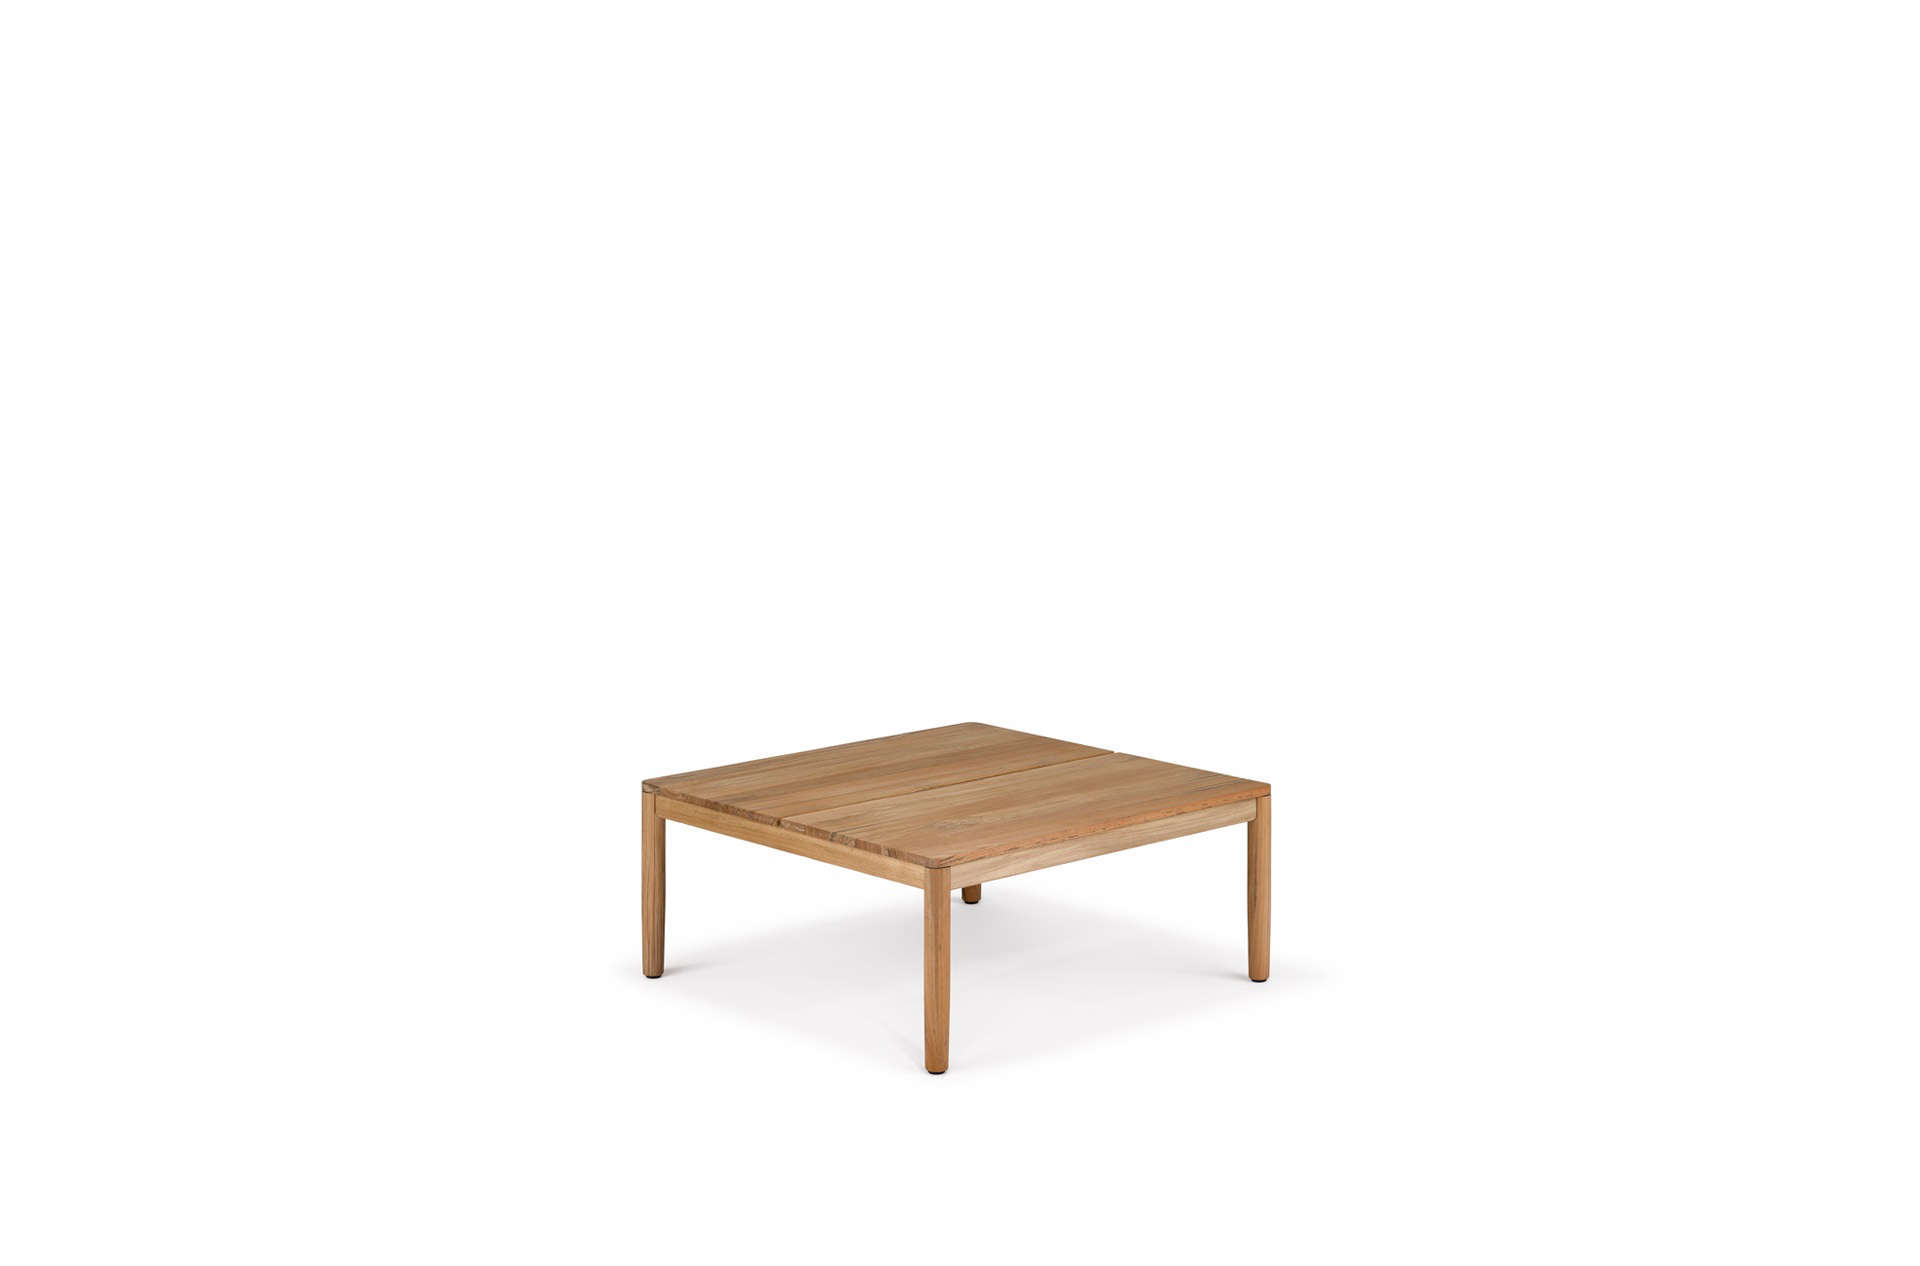 Sleek Teak A New Outdoor Furniture Collection By Barber